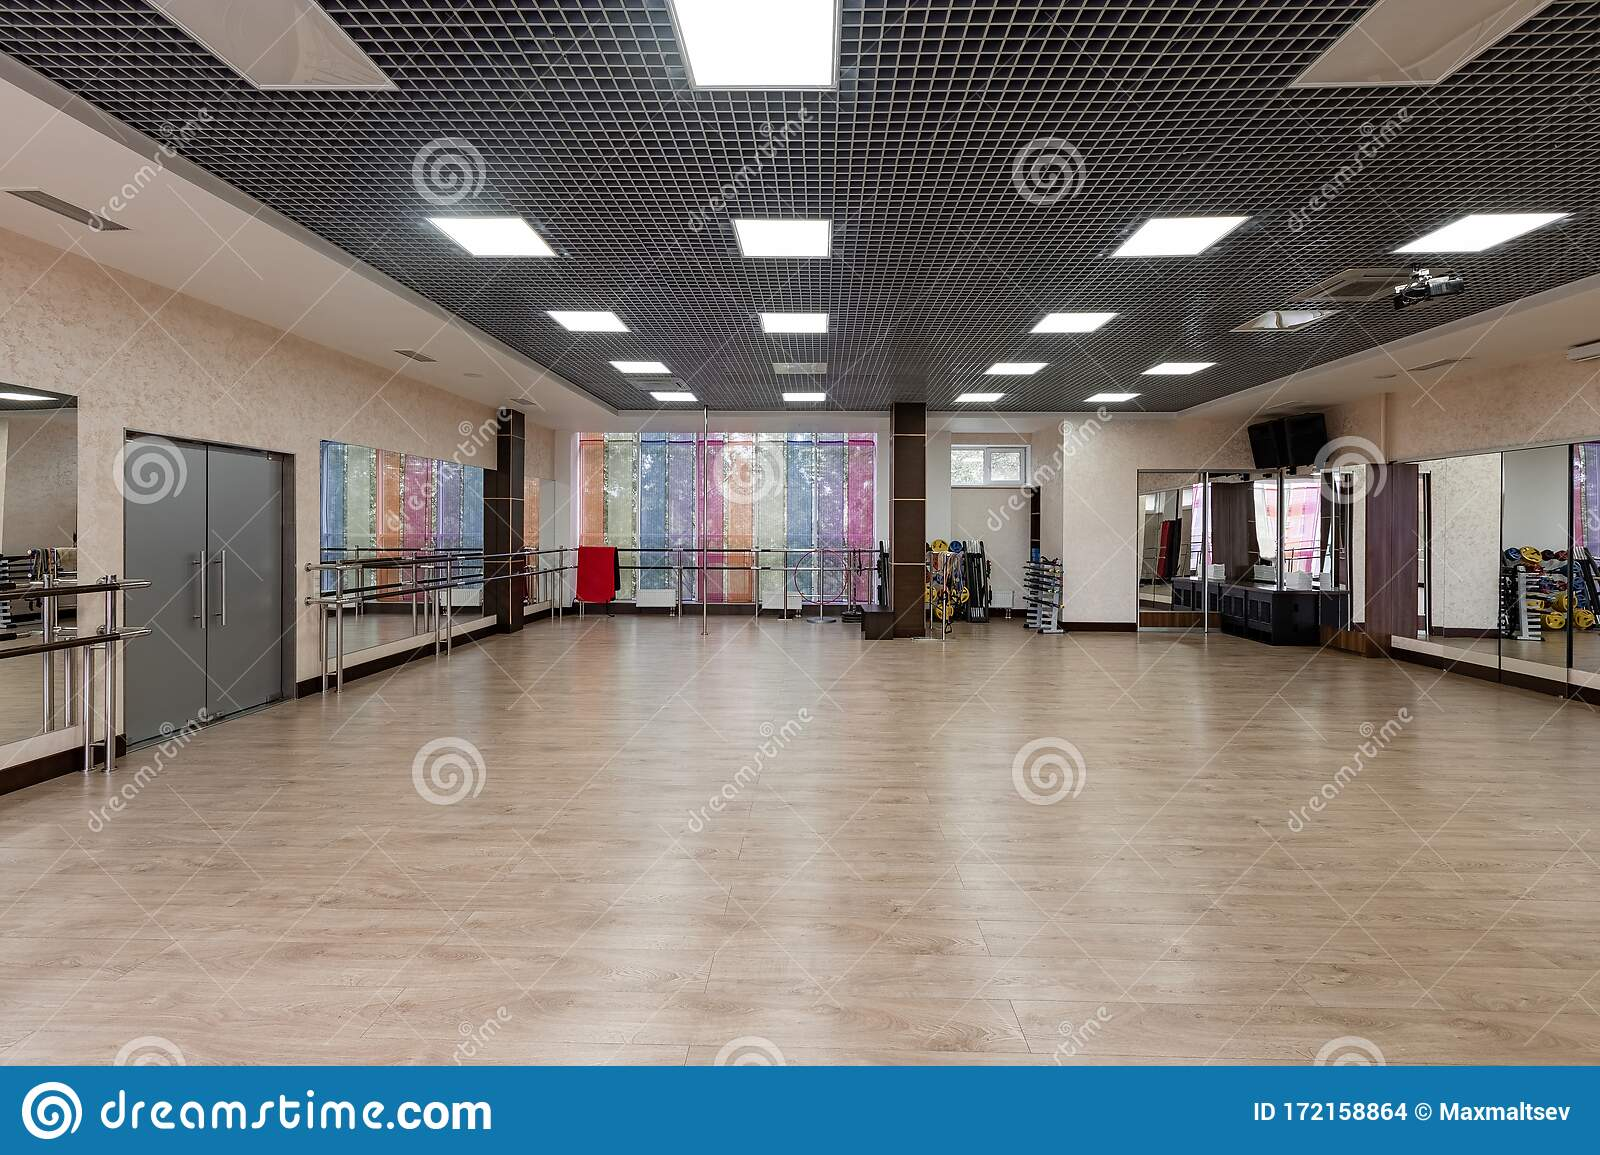 Group Fitness Room Modern Interior Design Fitness Workout Fitness Gym Background Gym Equipment Background Empty Stock Photo Image Of Leisure Nobody 172158864